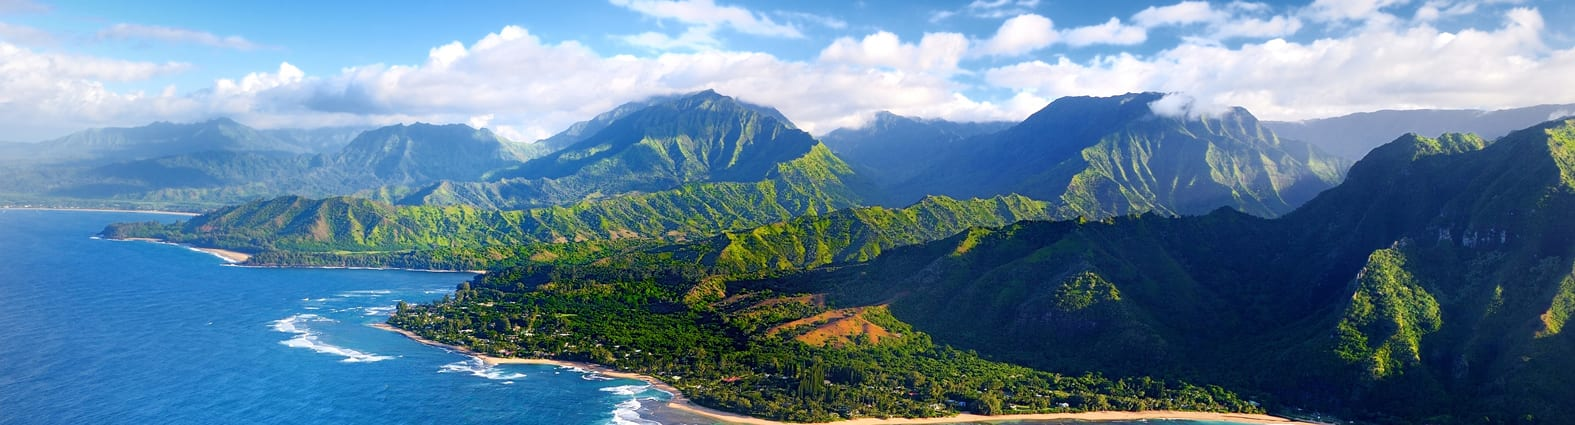 Air Tours Maui, Maui Air Tours Hawaii